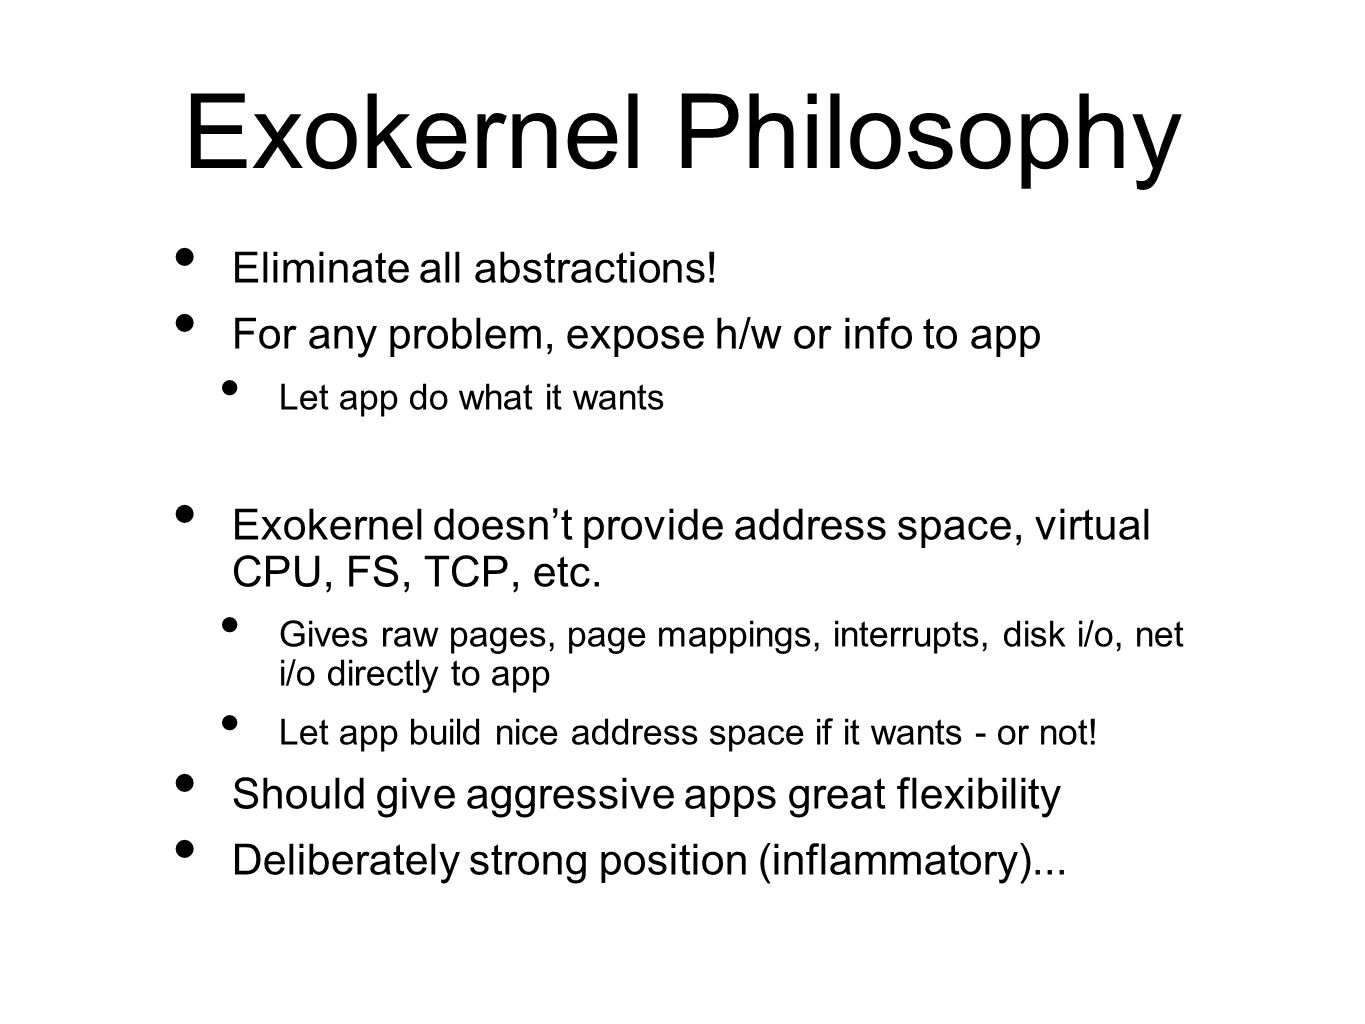 Exokernel Philosophy Eliminate all abstractions! For any problem, expose h/w or info to app Let app do what it wants Exokernel doesn't provide address